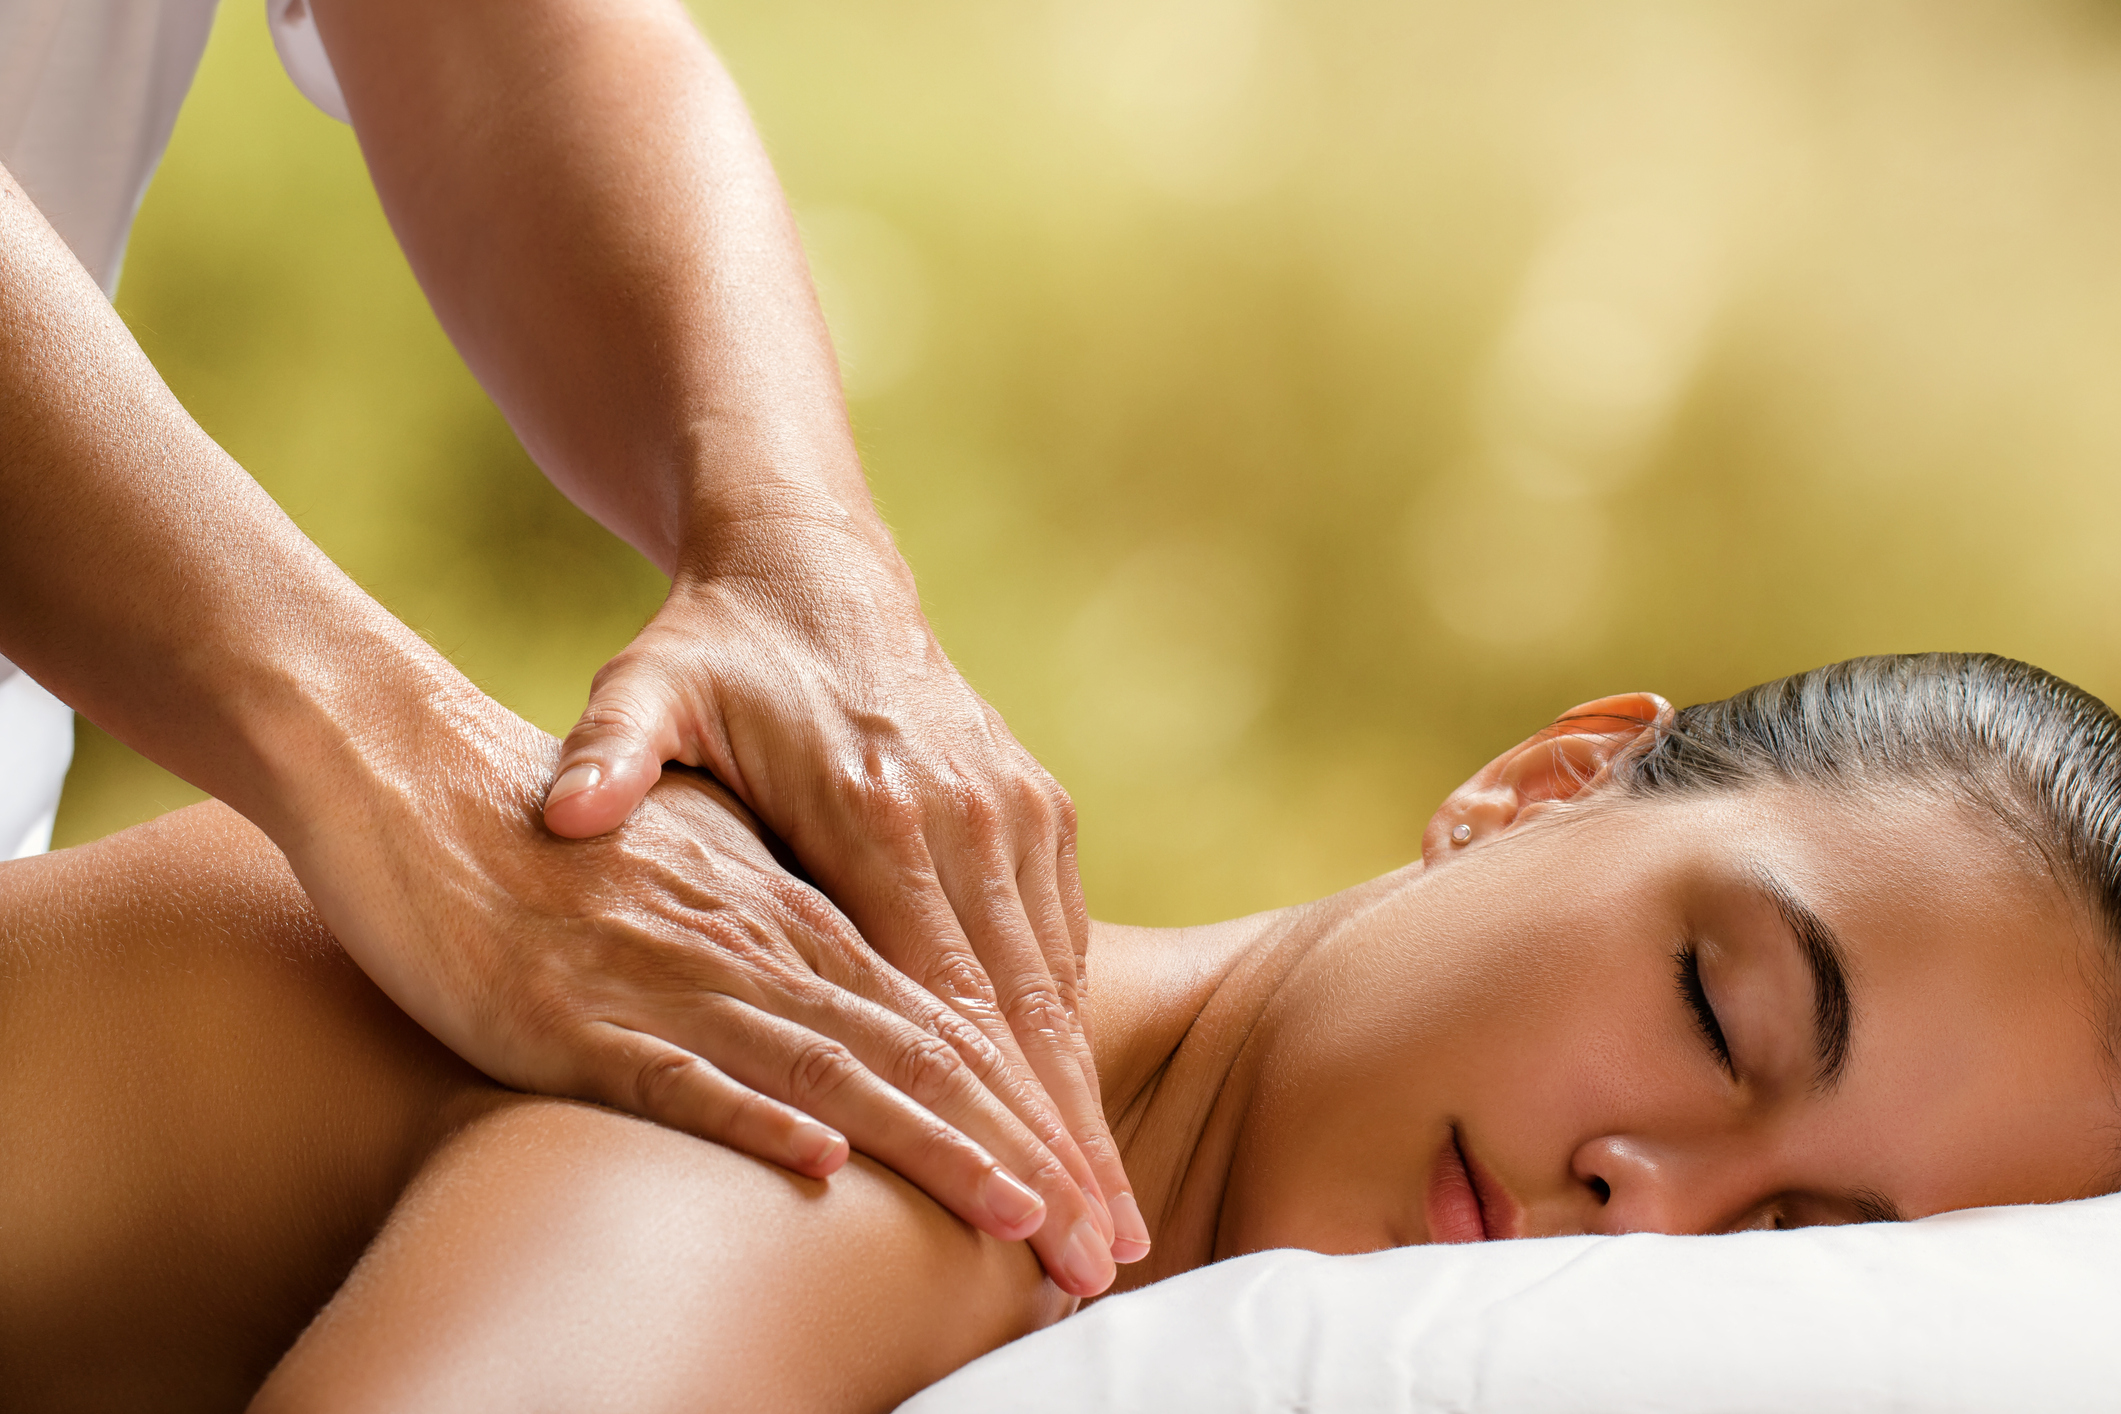 Deep tissue, myofascial release, hot stone, sports injury massage, swedish and more! Book a customized massage just for you.